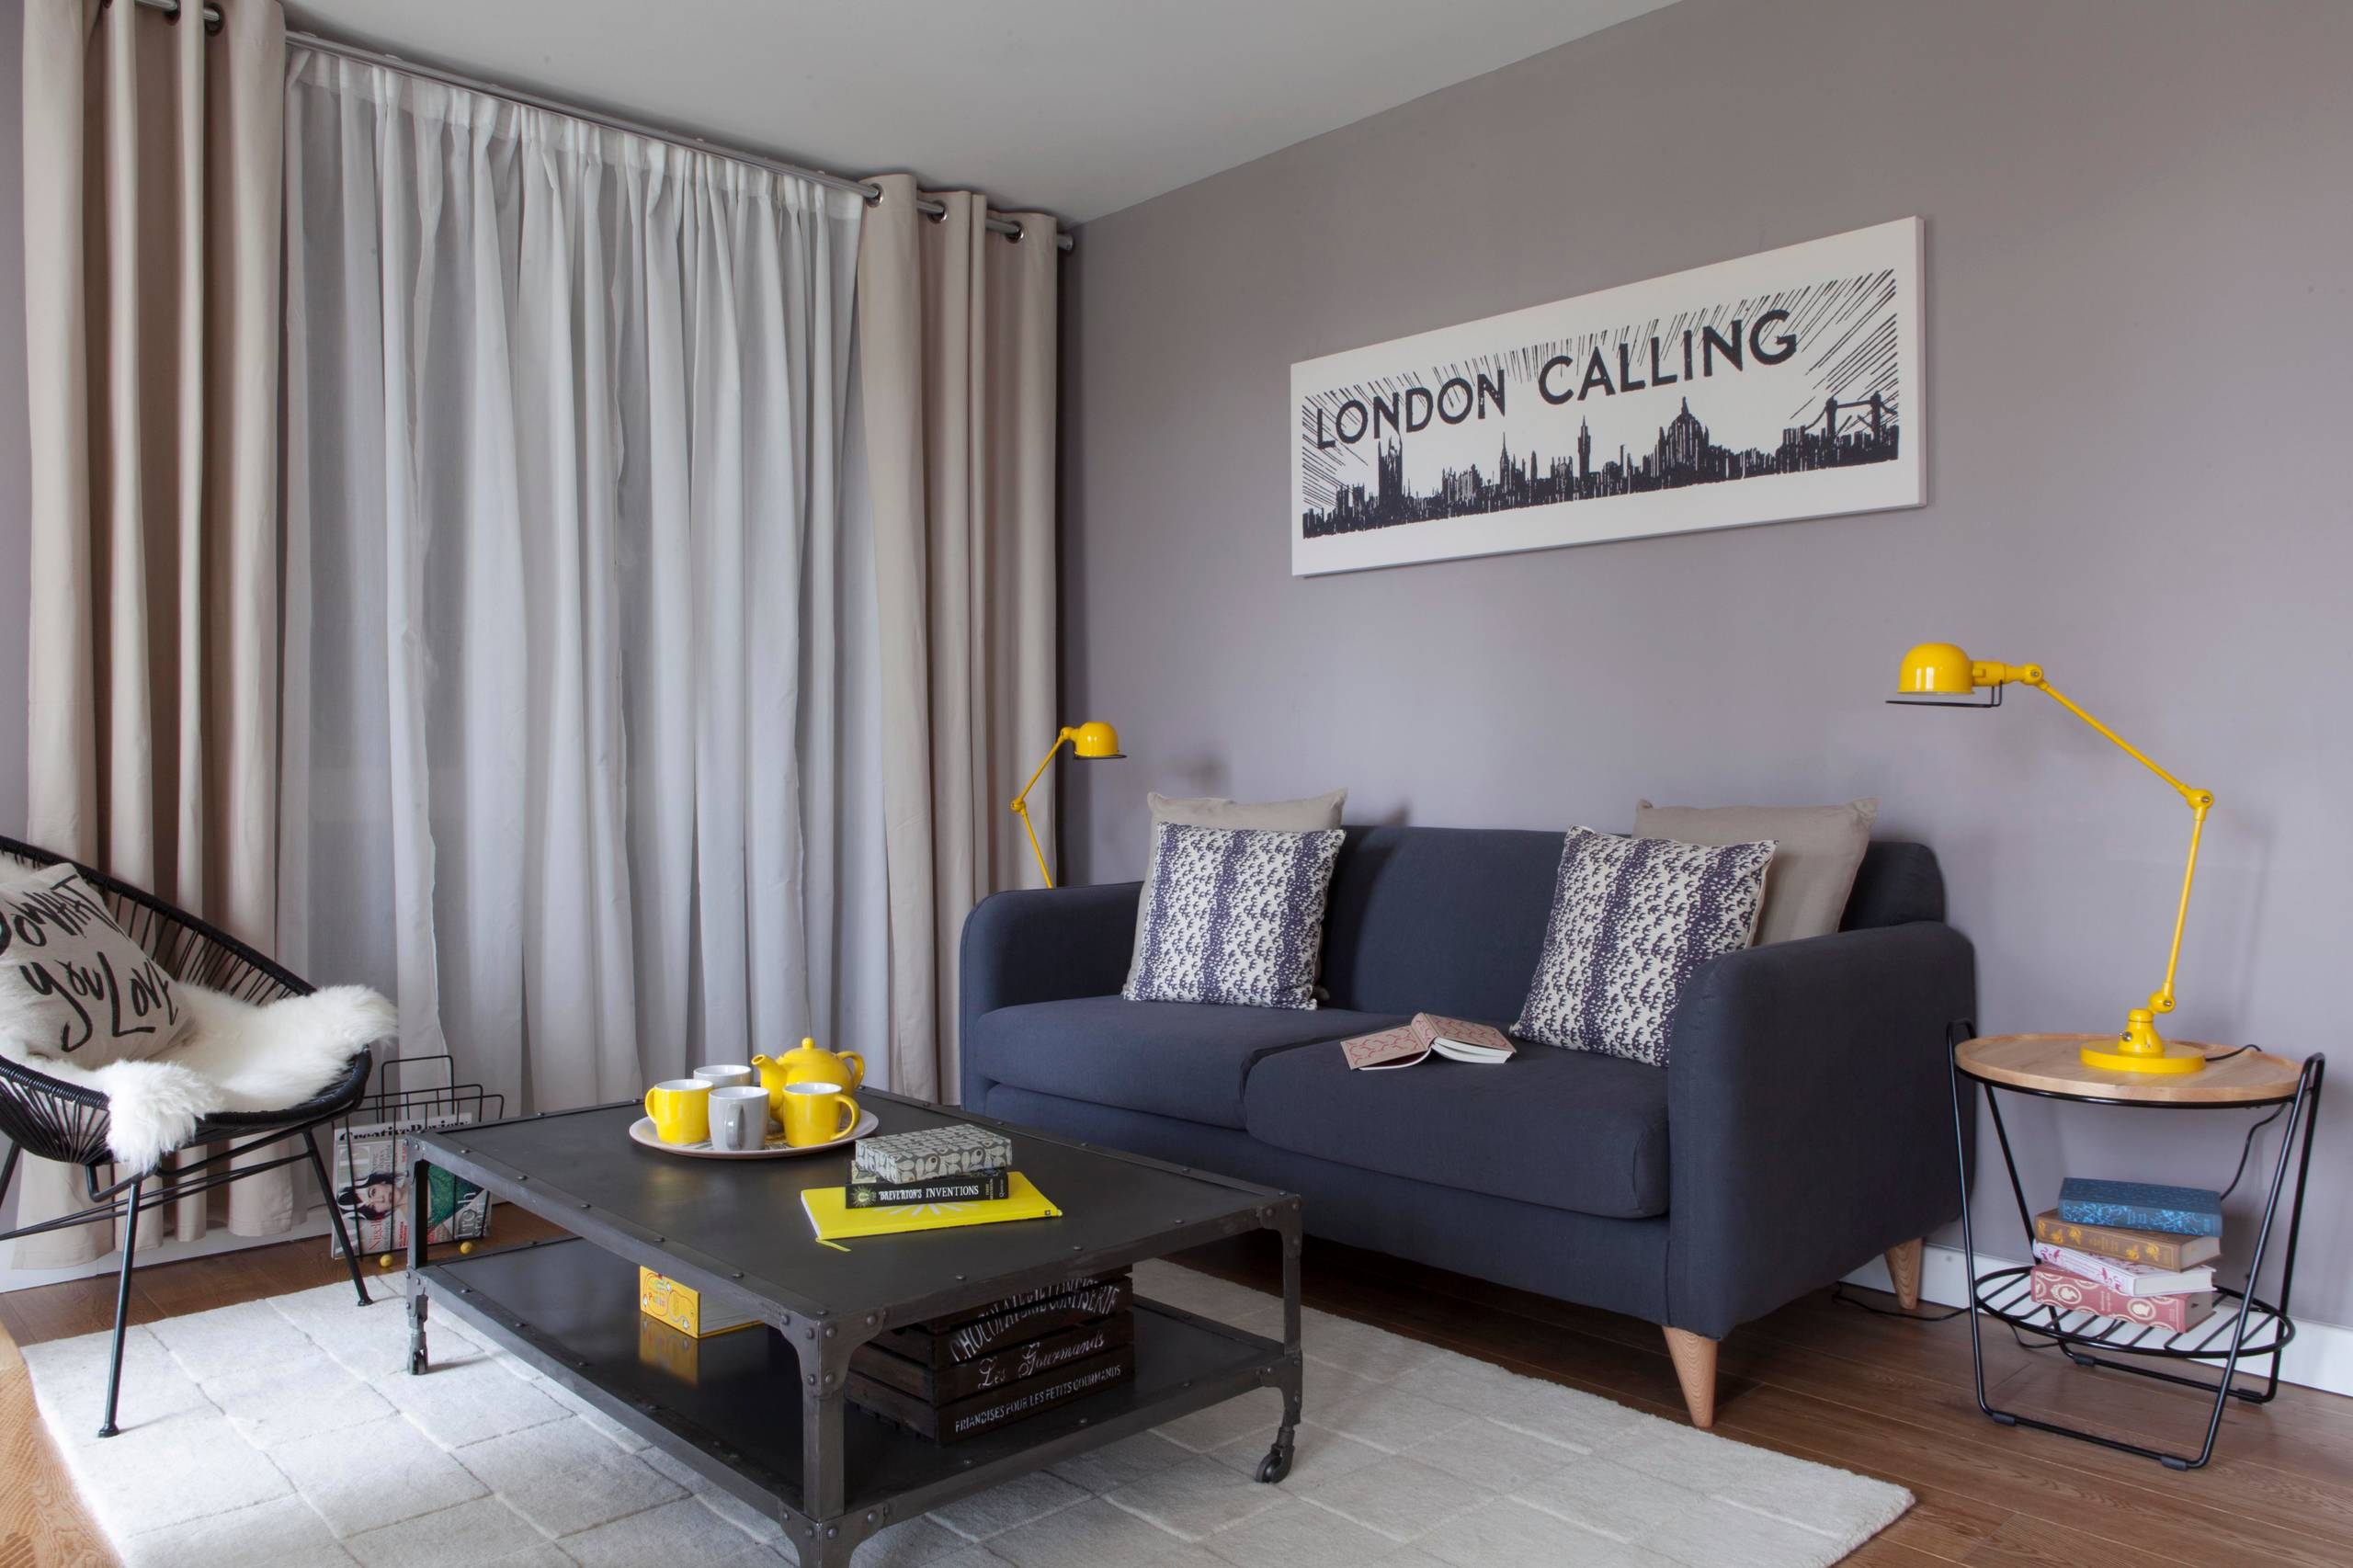 10 Modern Ideas For Curtains Houzz Uk, Contemporary Curtains For Living Room Uk